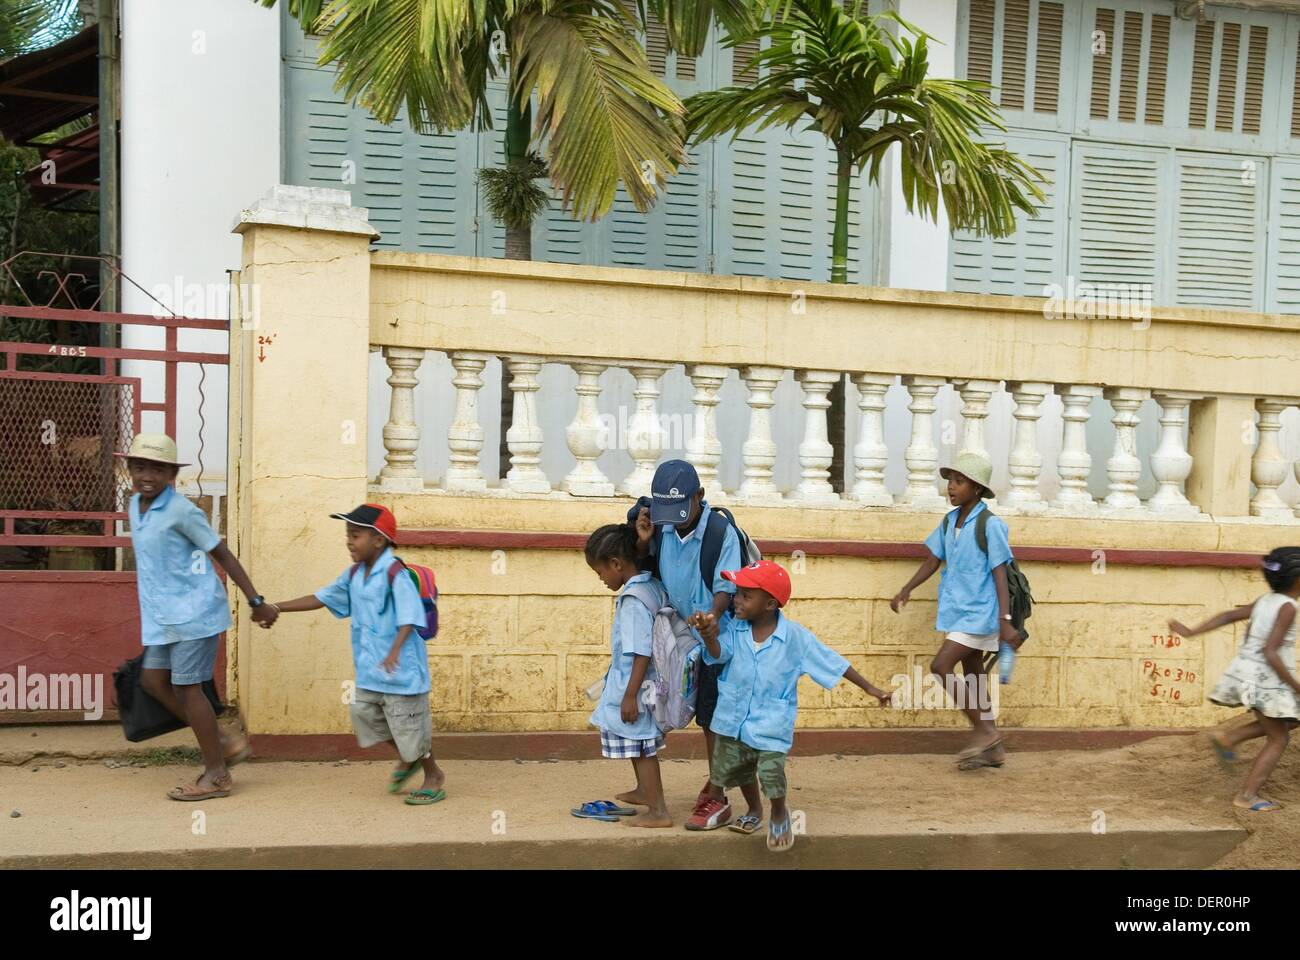 schoolchildren, Hell-Ville Andoany, Nosy Be island, Republic of Madagascar, Indian Ocean - Stock Image